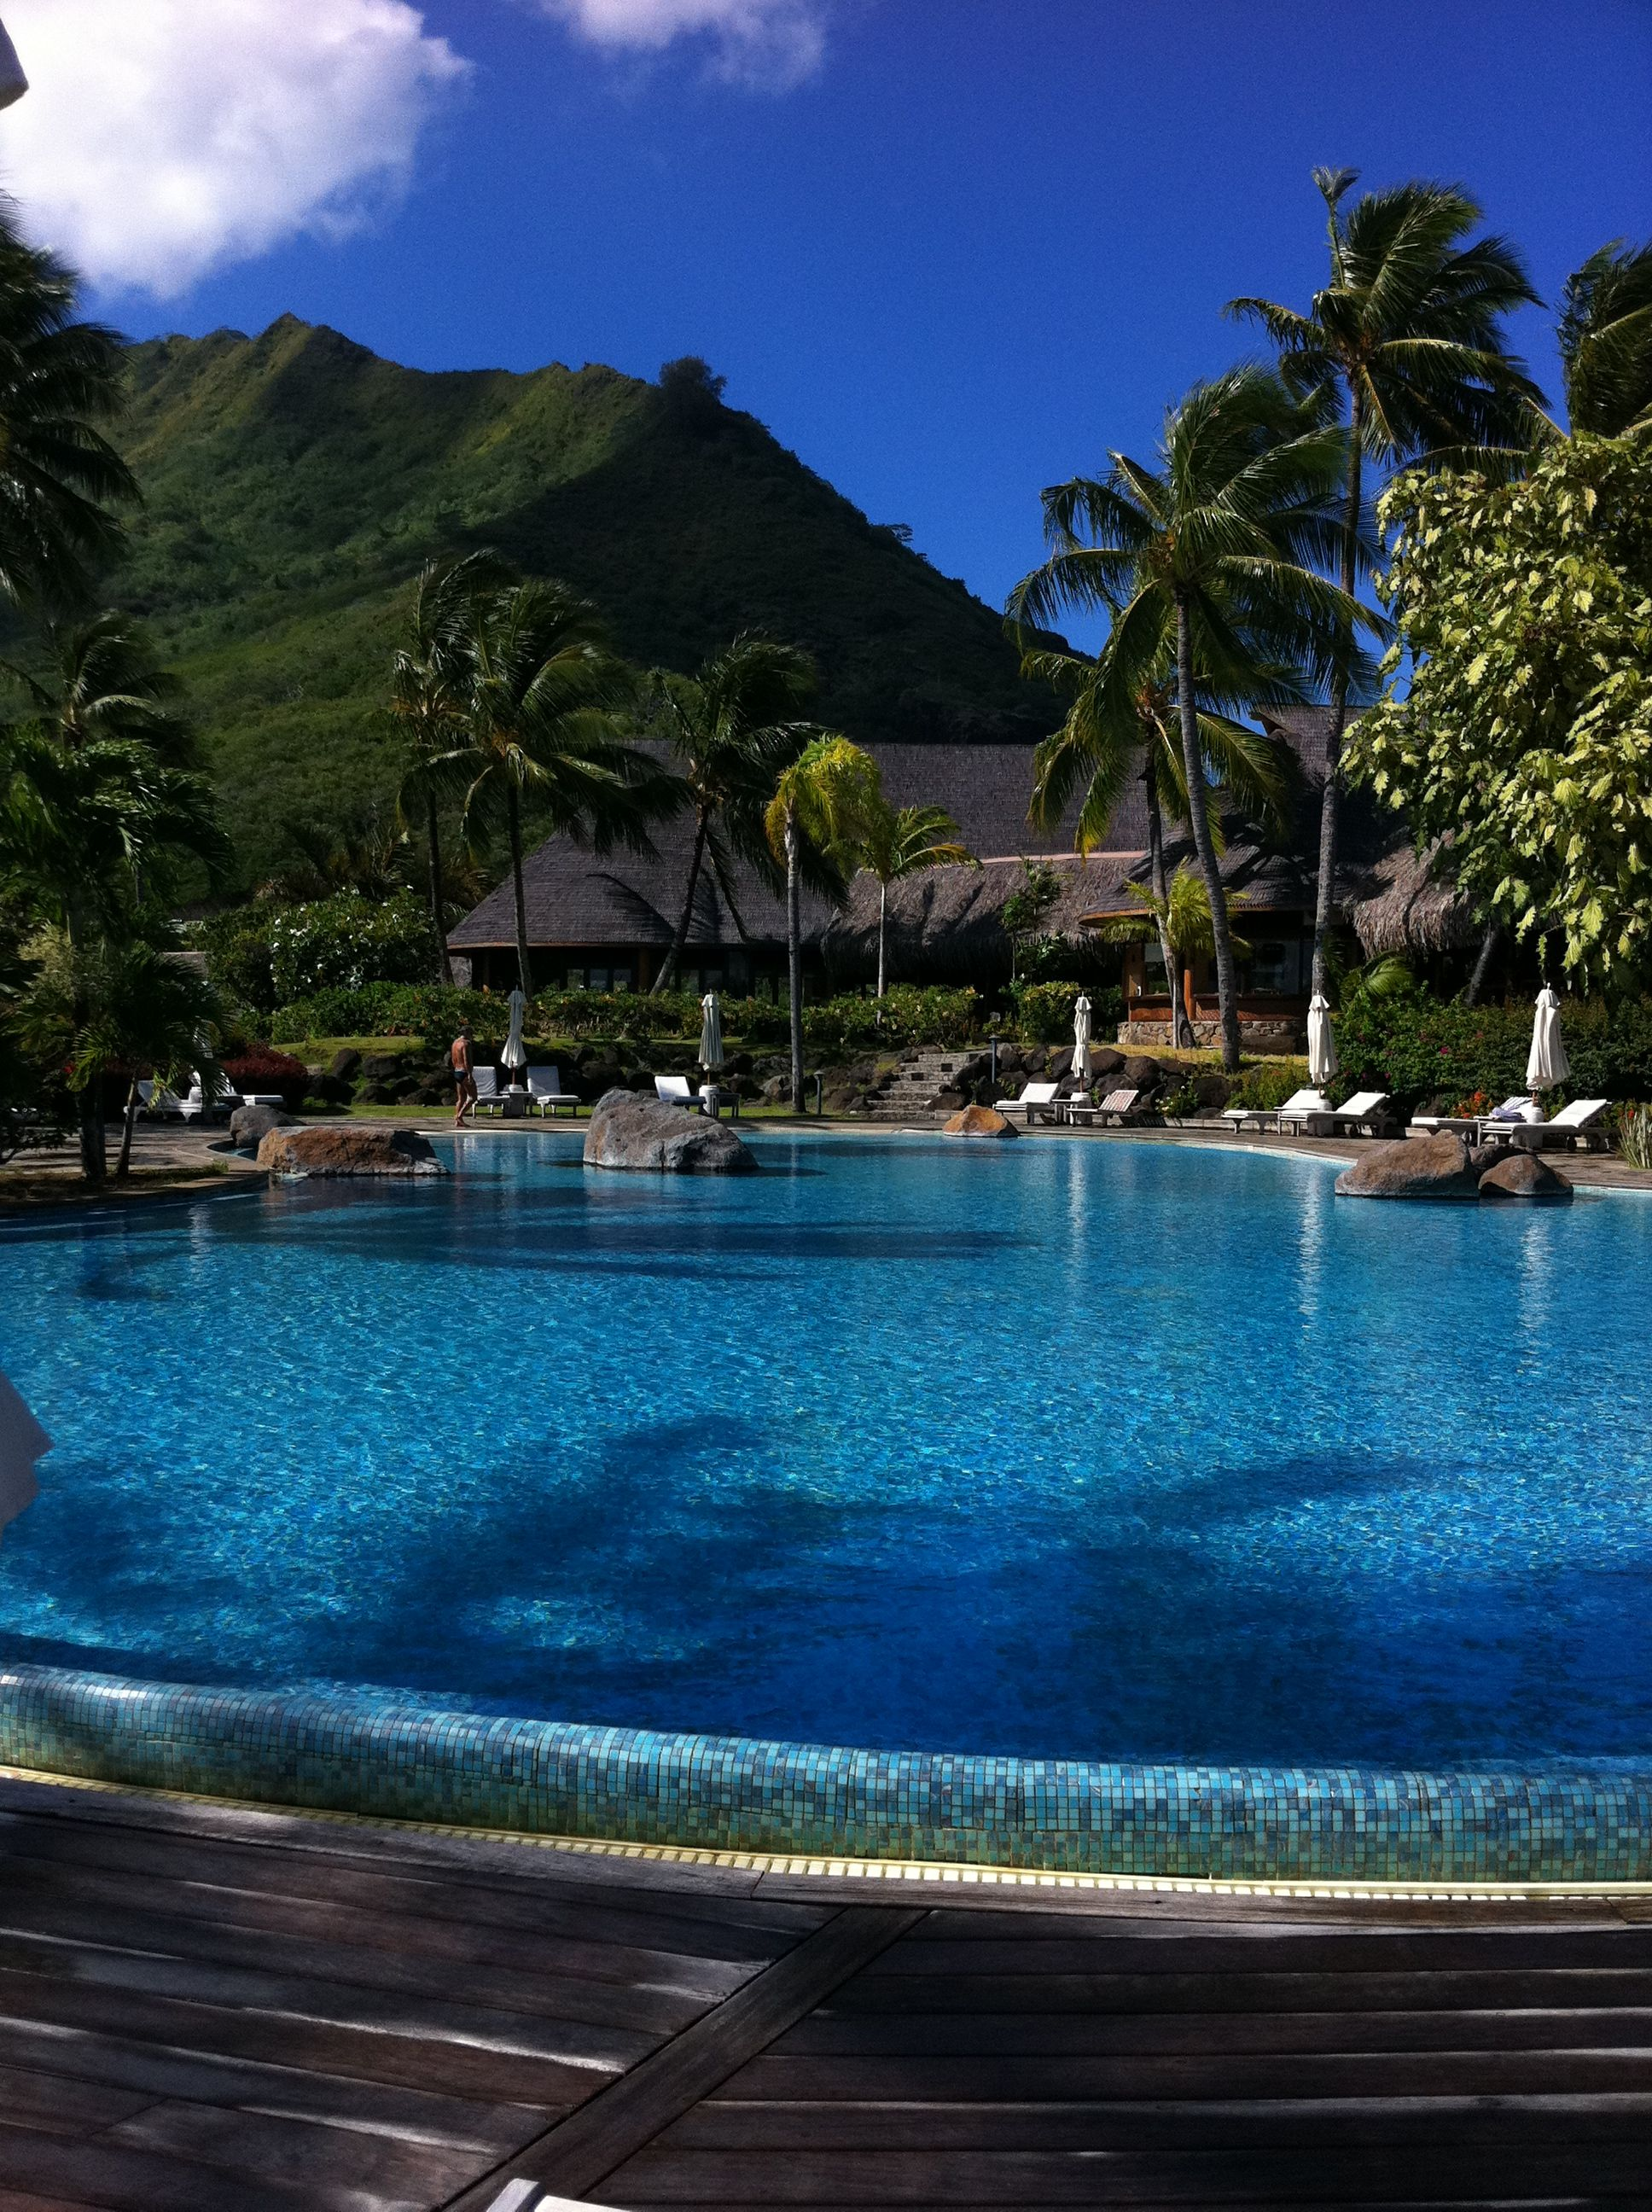 tropical places | tahiti | tropical places of pure sun | vacation